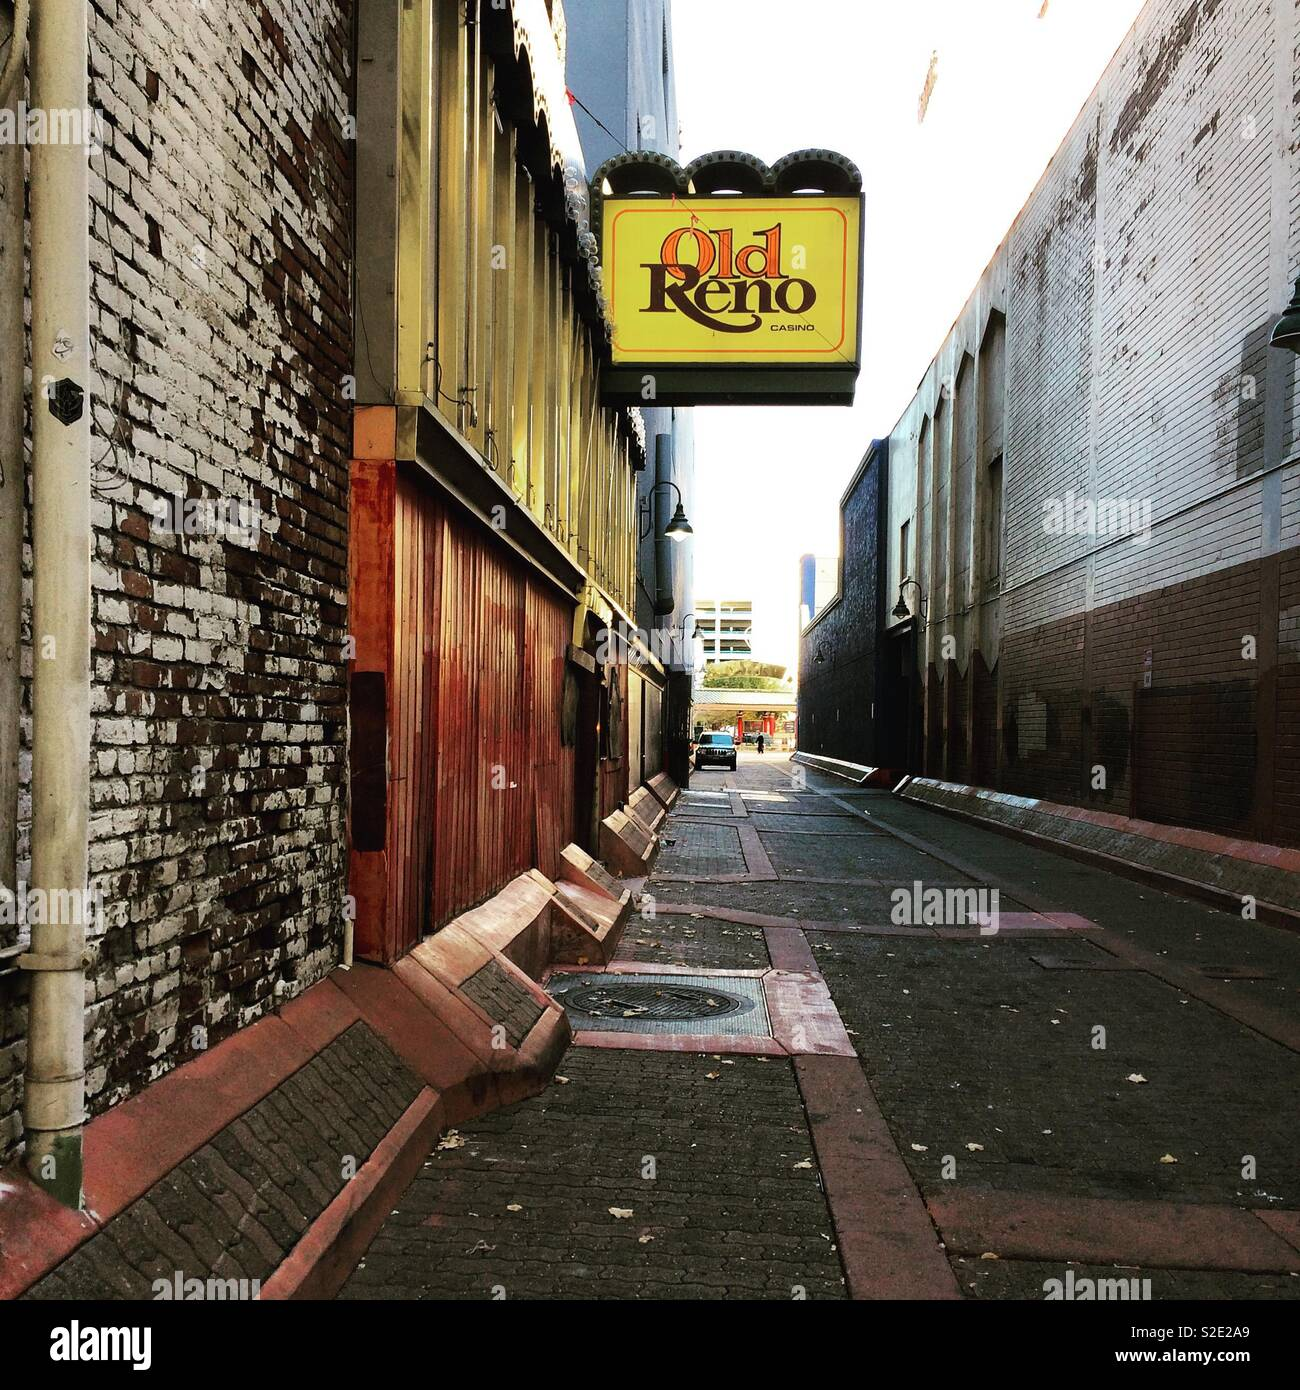 An alleyway in Downtown Reno, Nevada, United States - Stock Image